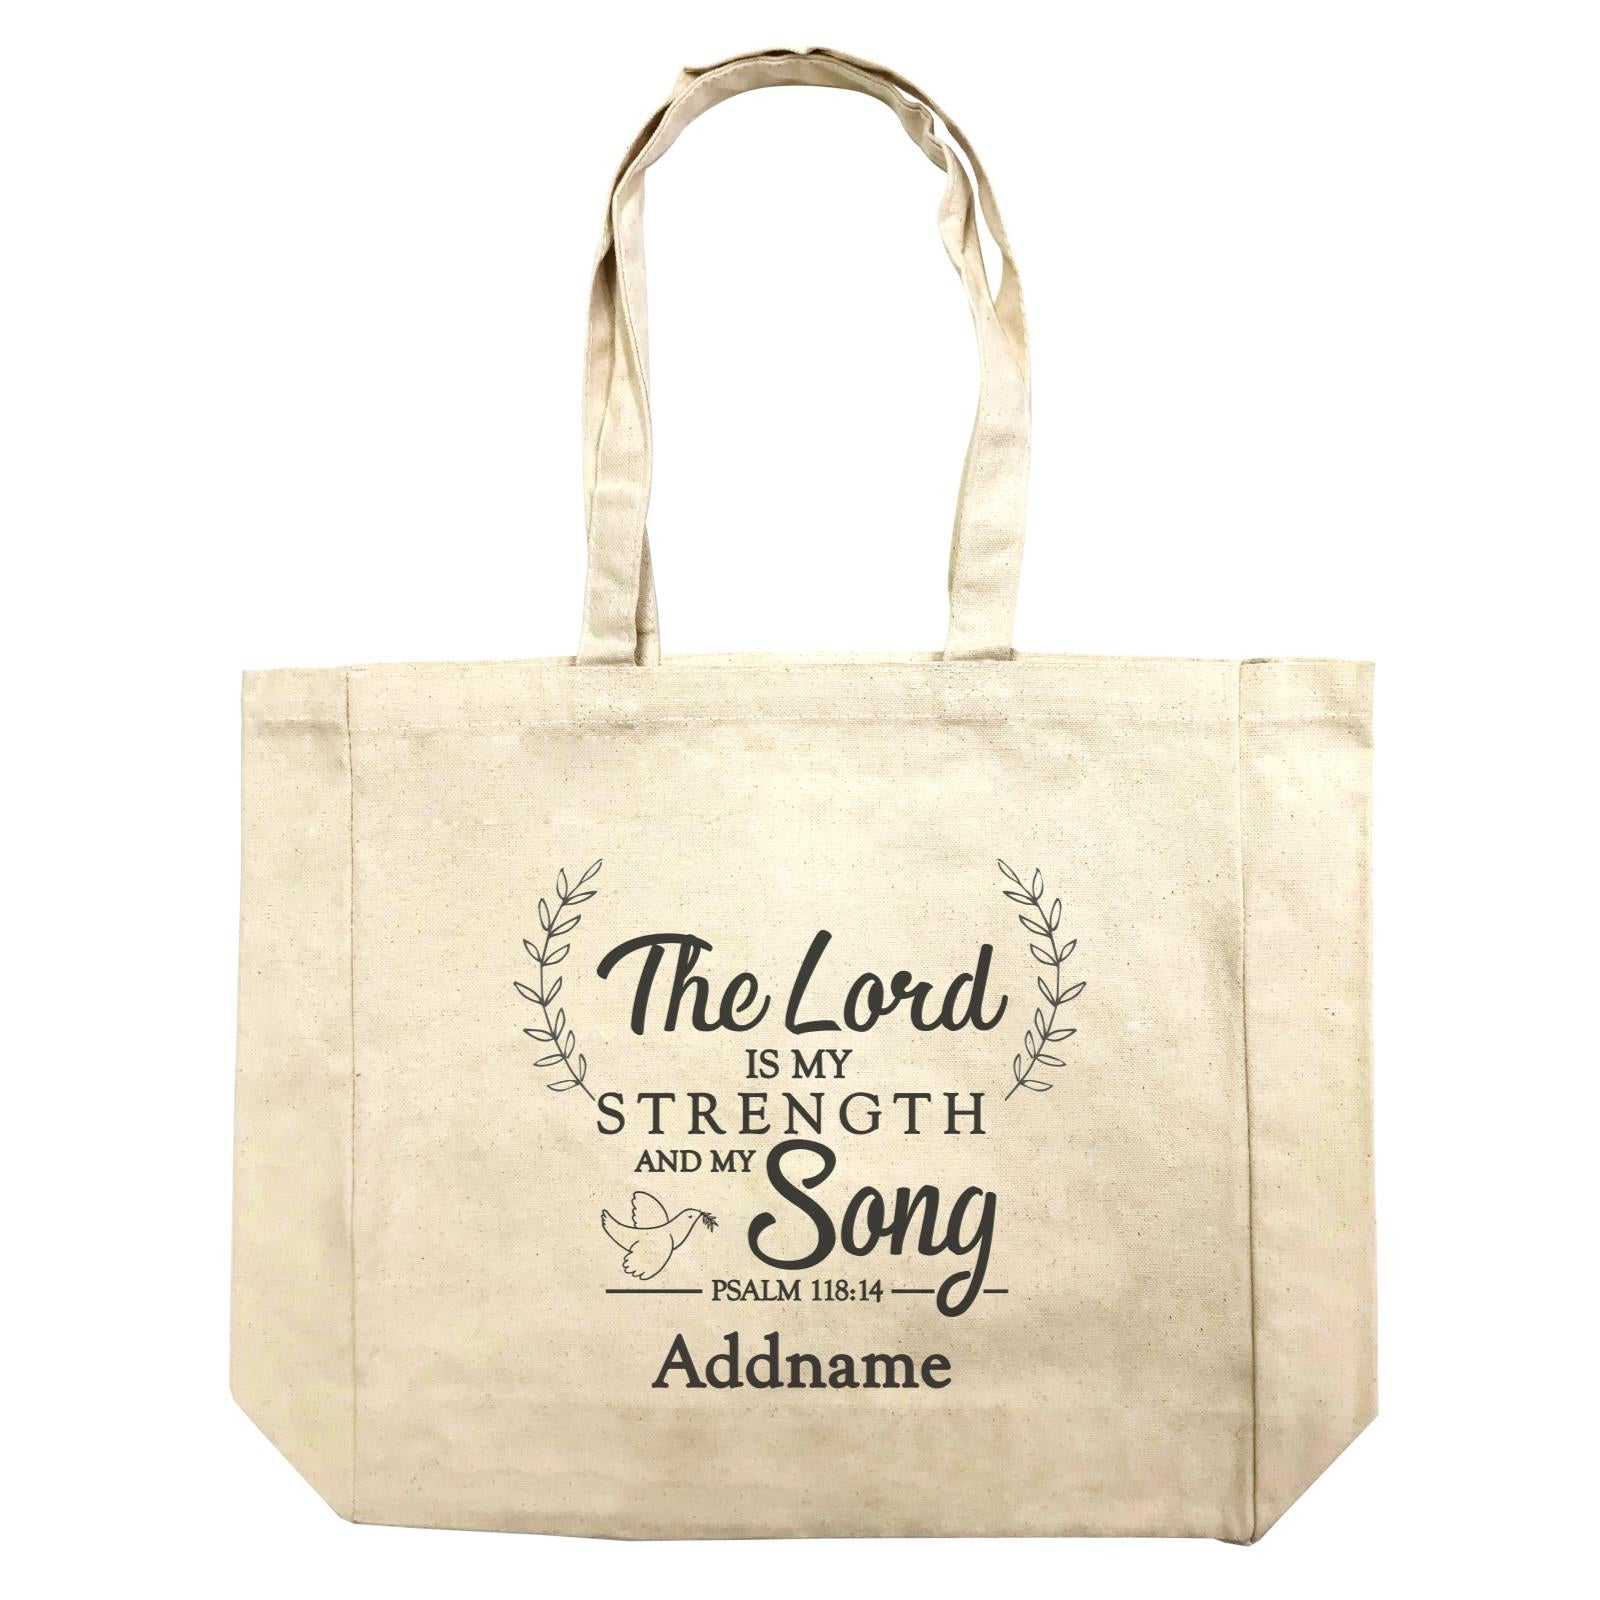 Christian Series The Lord Is My Strength Song Psalm 118.14 Addname Shopping Bag